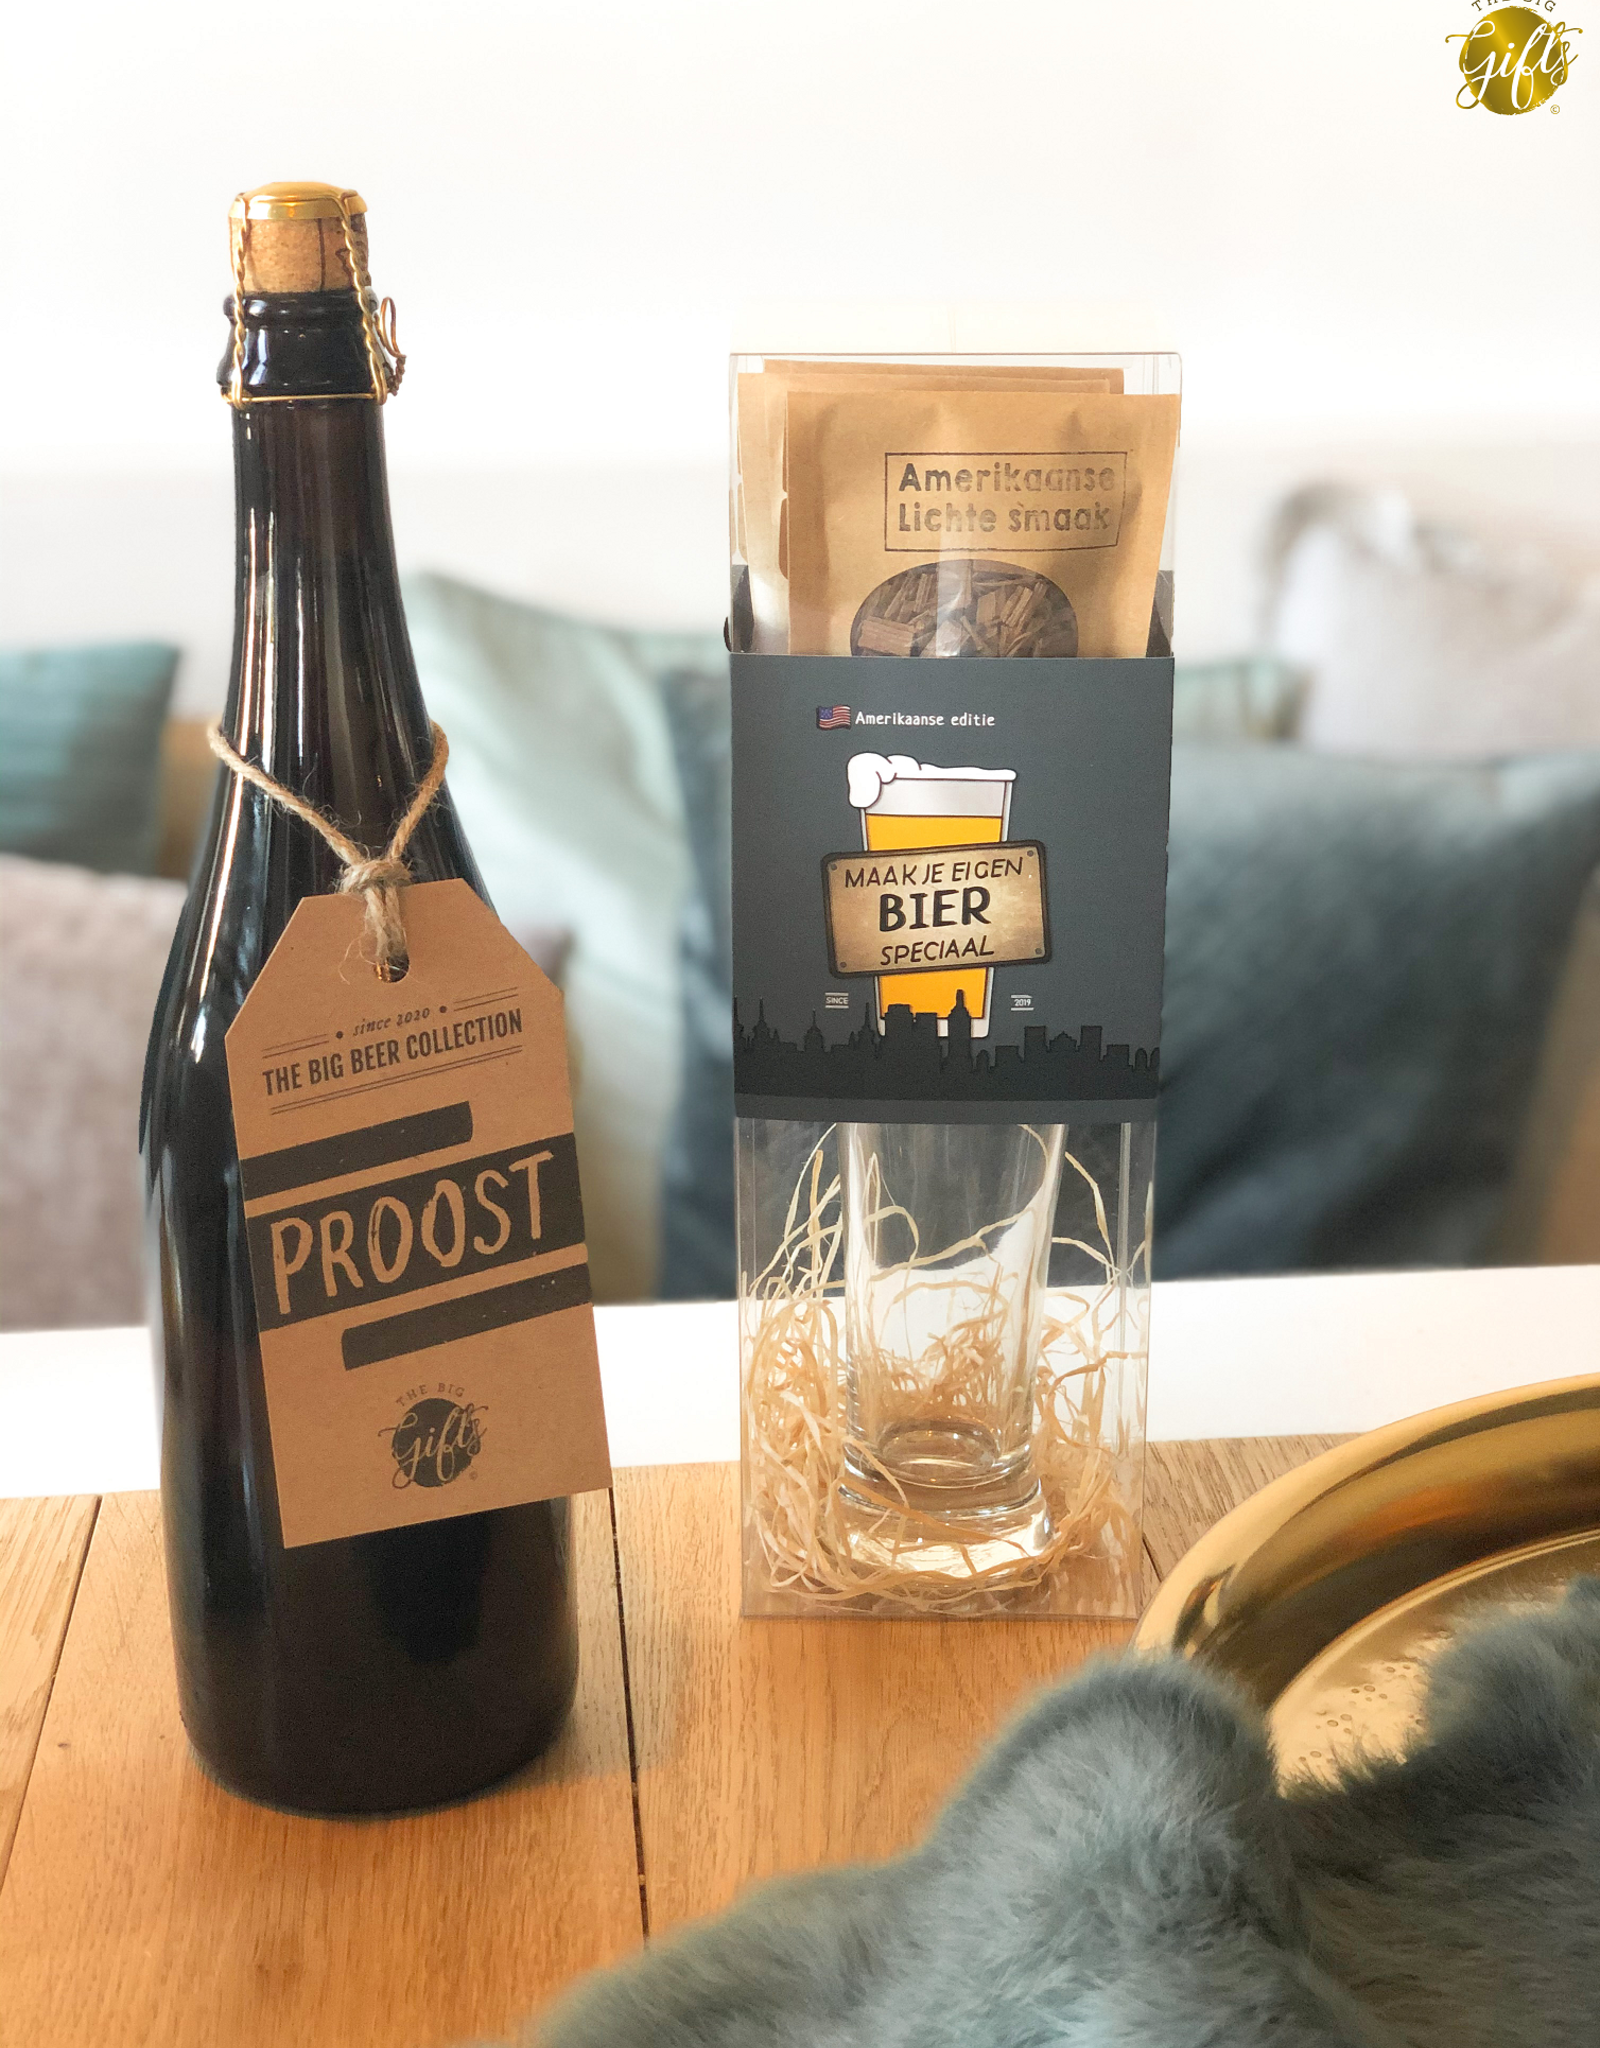 """The Big Gifts XL Bierfles """"Proost"""" - The Big Gifts"""